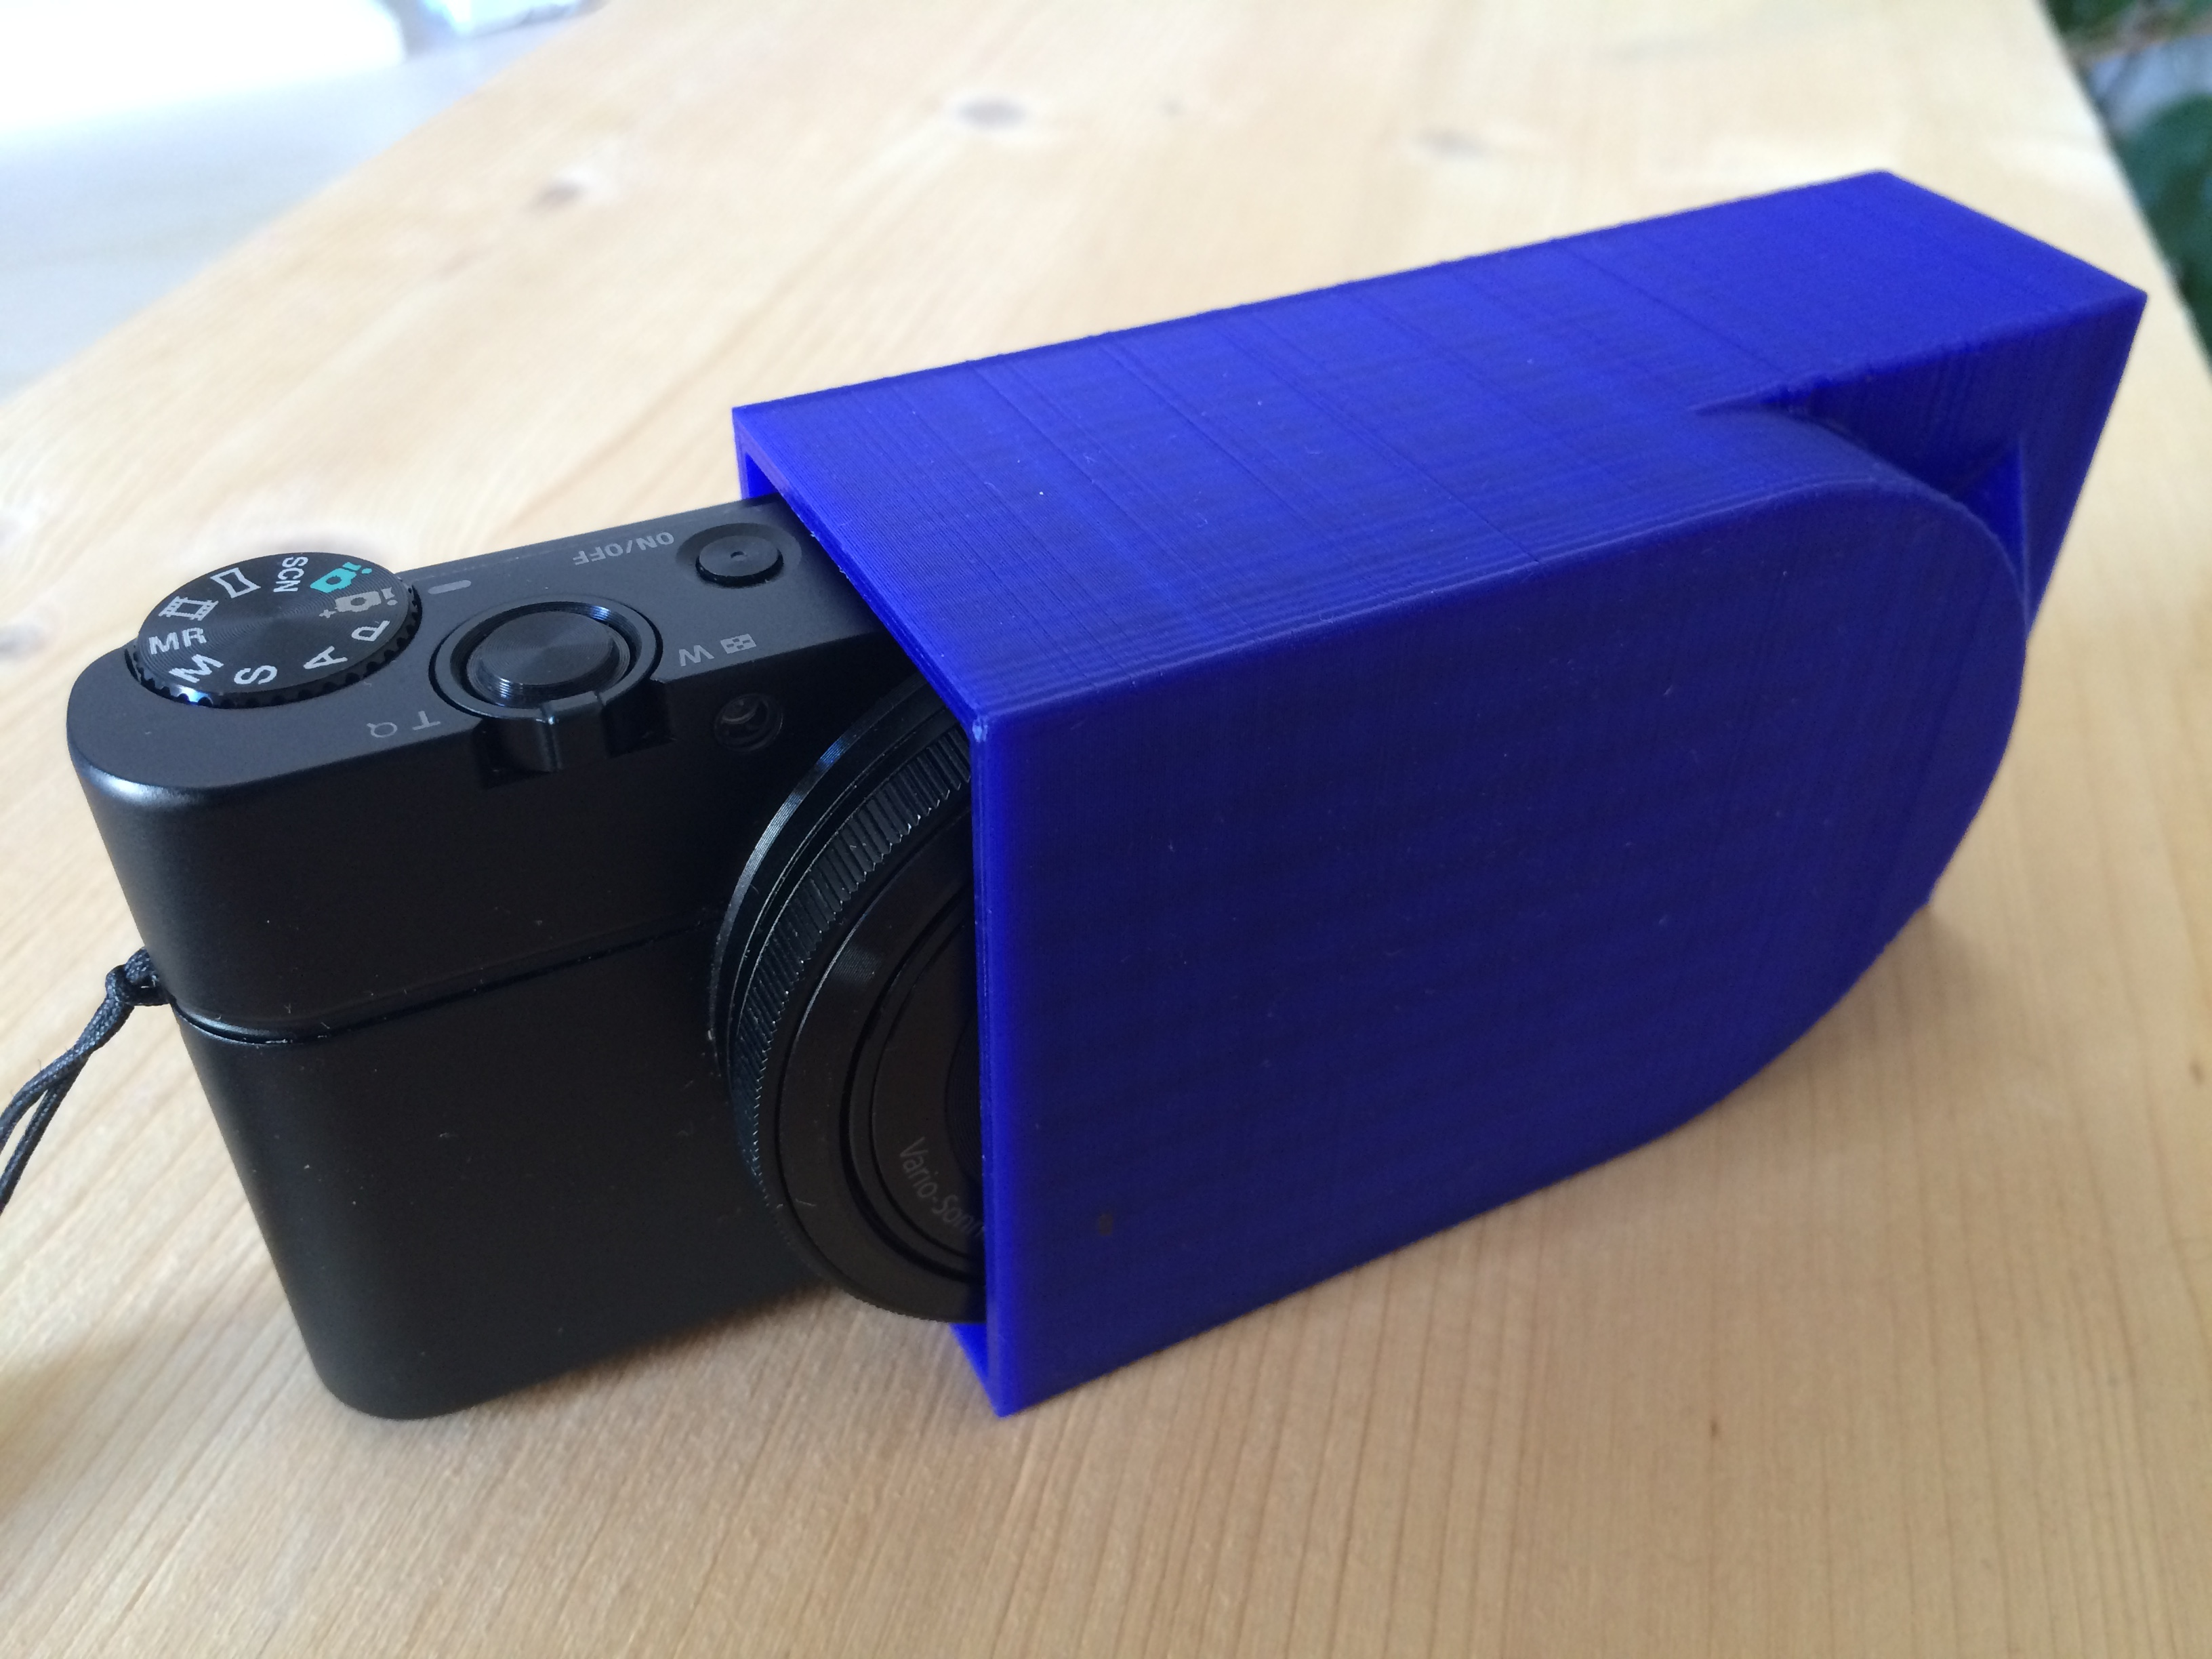 Sony RX100 mark I camera case with clip